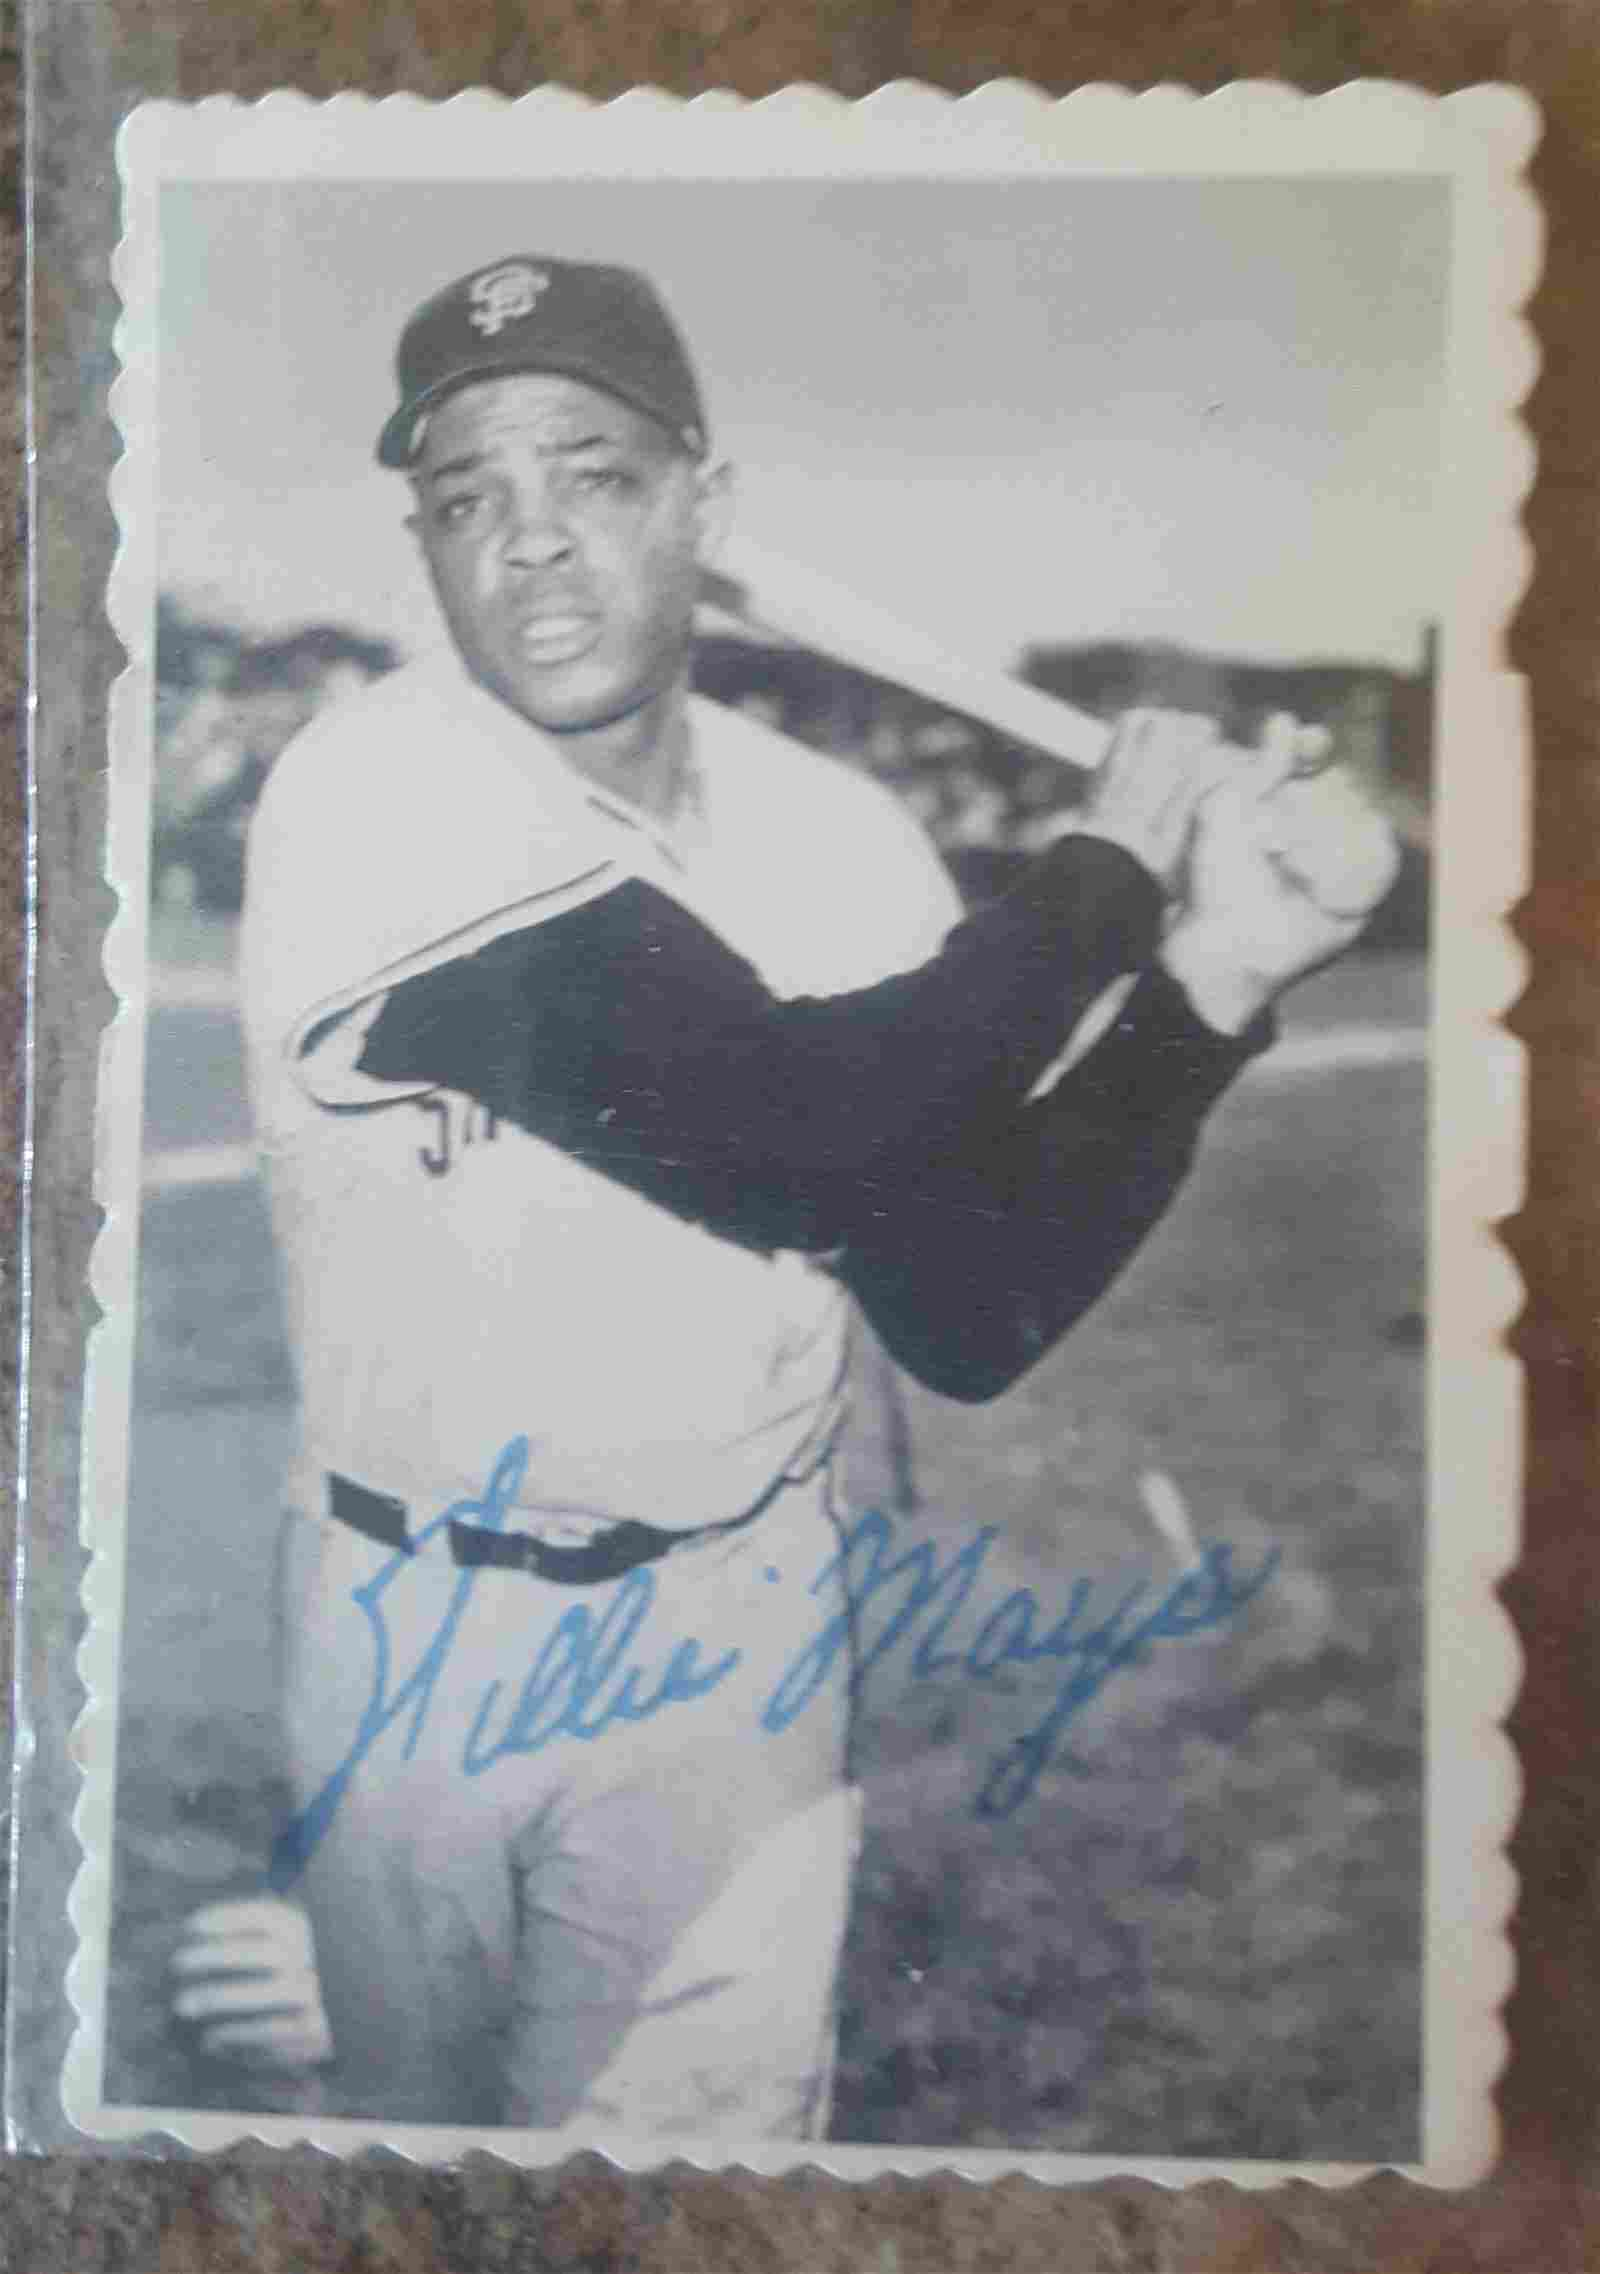 69 Topps Deckle Edge Willie Mays